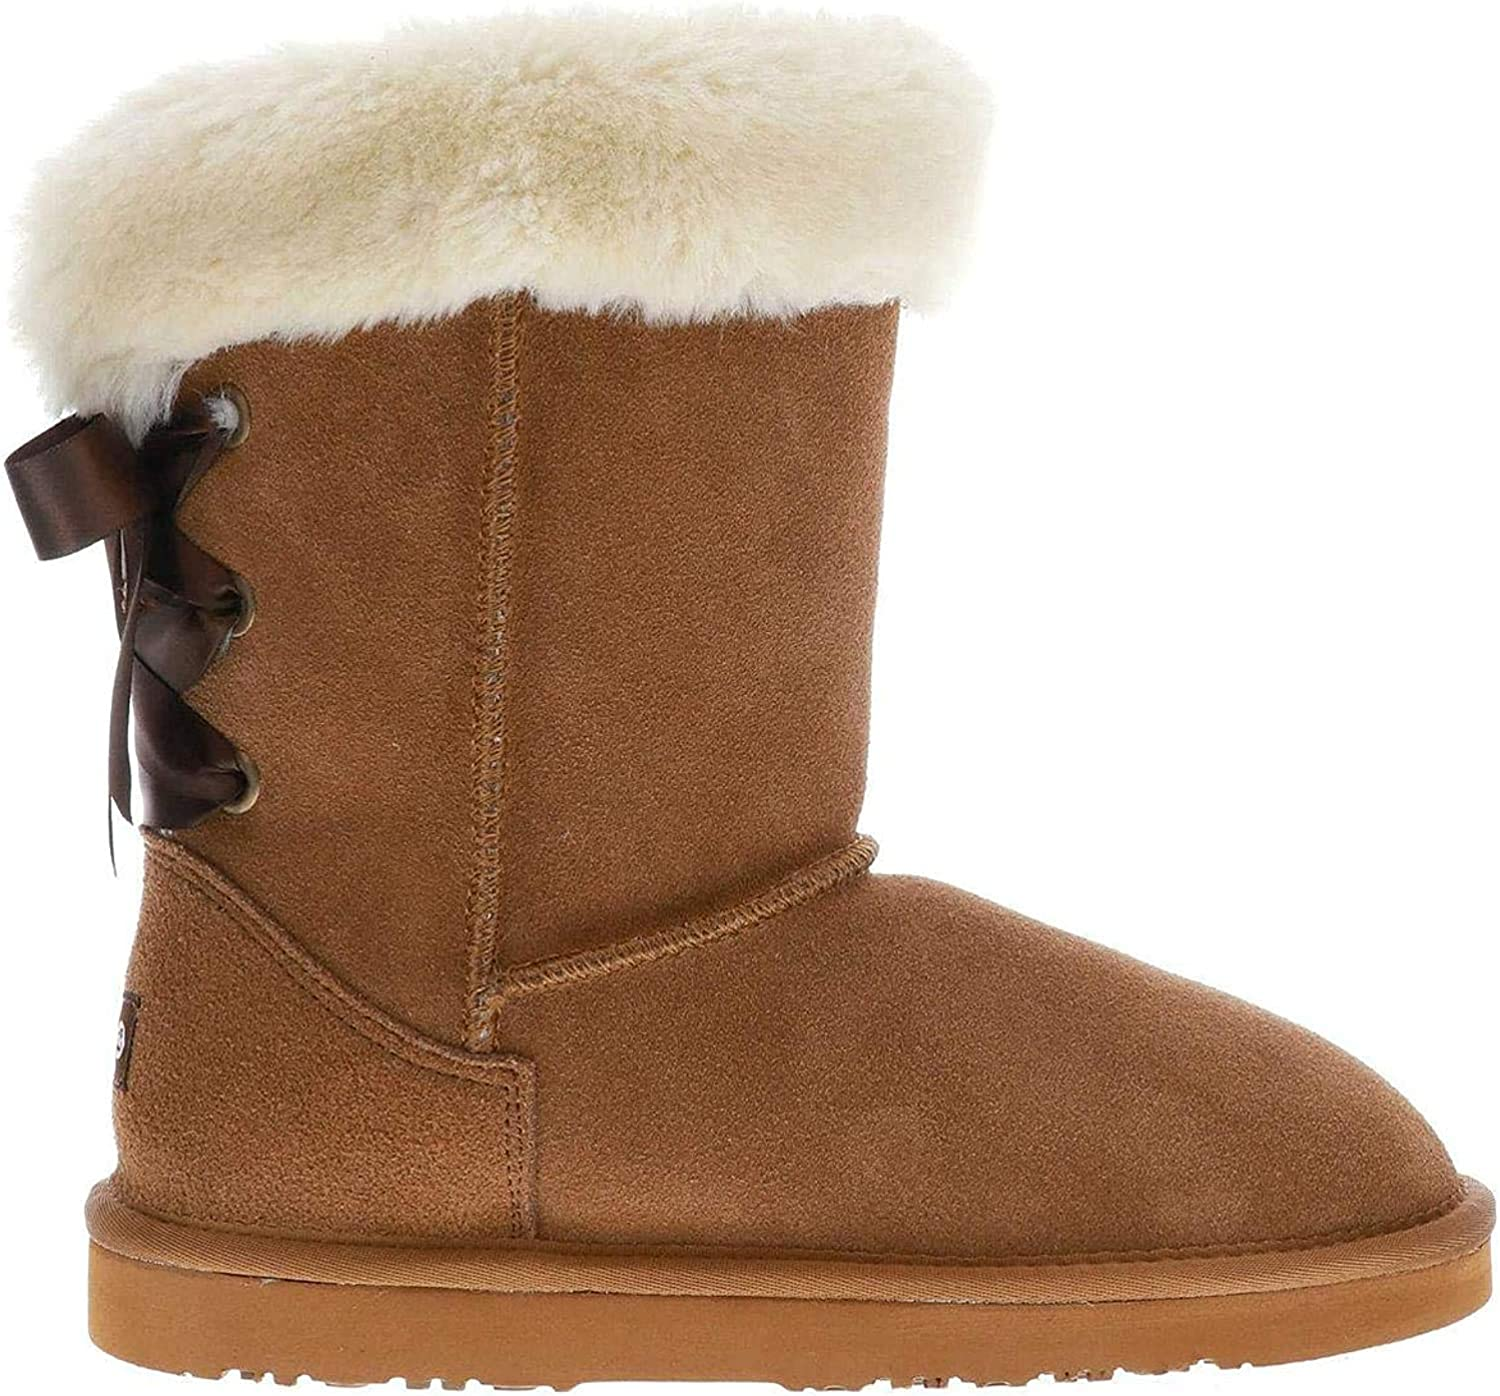 Year-end annual account Lamo Footwear Women's Audrey Toe Round Direct sale of manufacturer Winter Boot